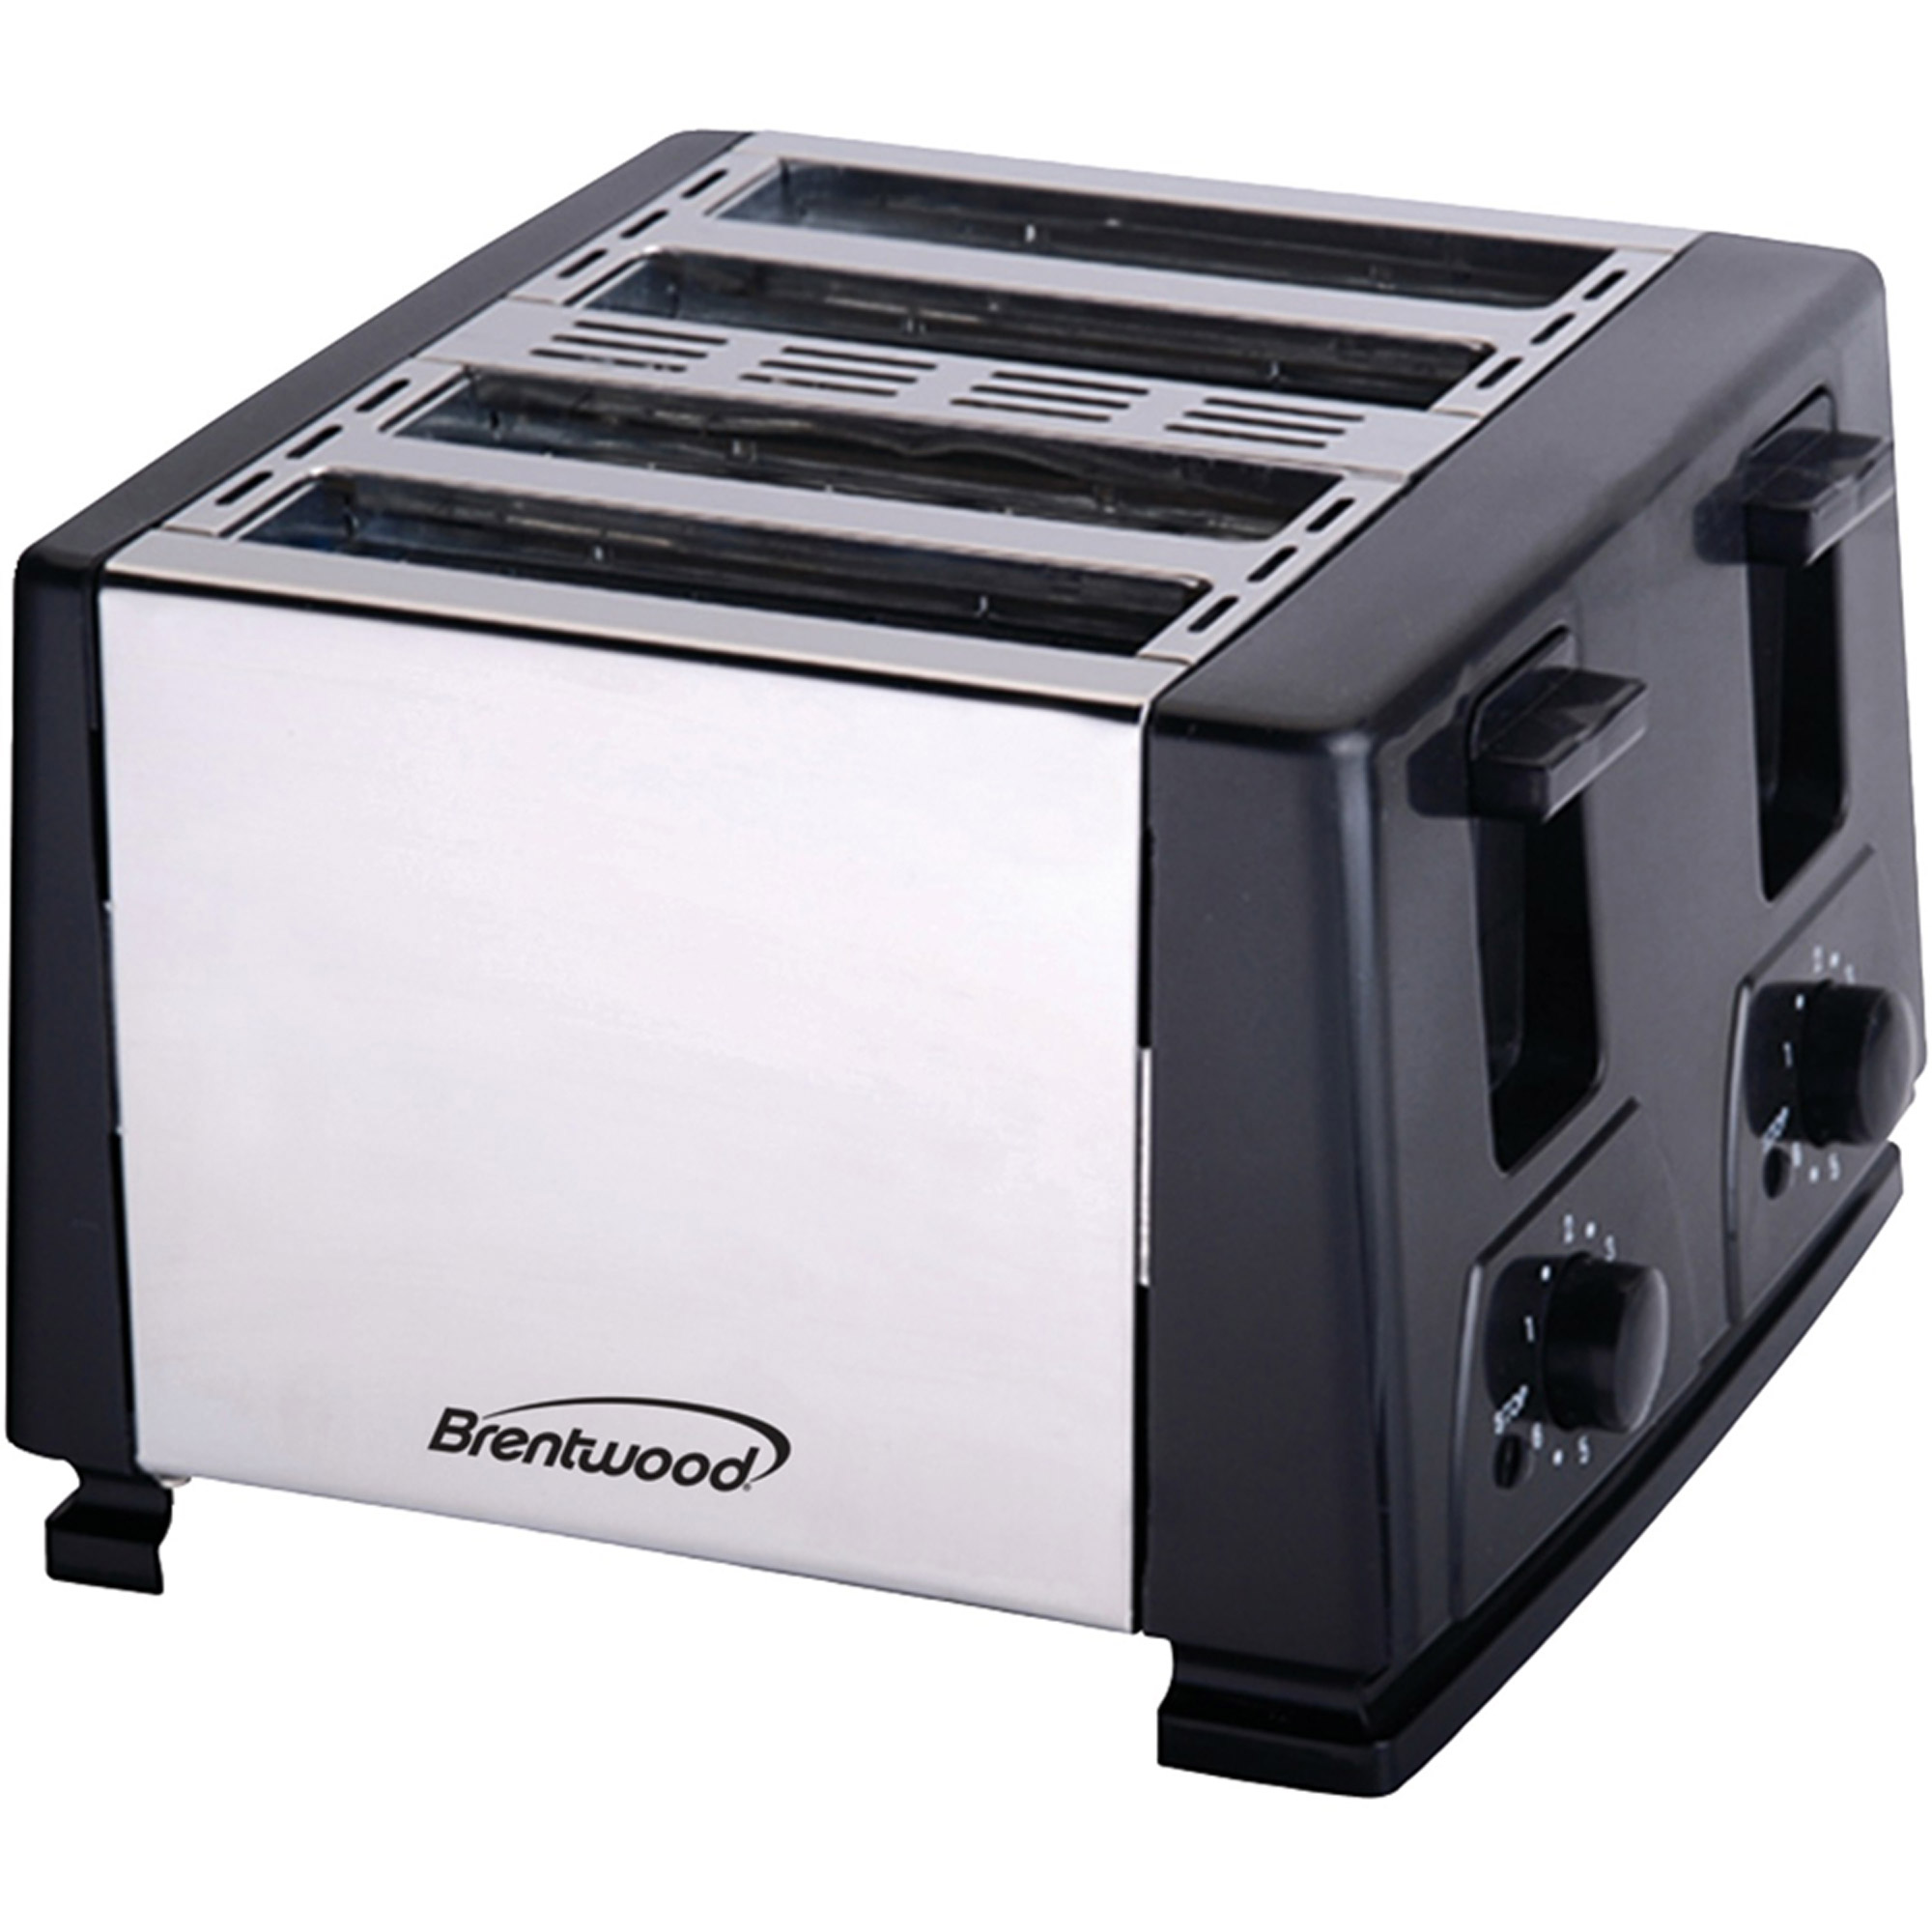 Brentwood TS-284 4-Slice Toaster, Black